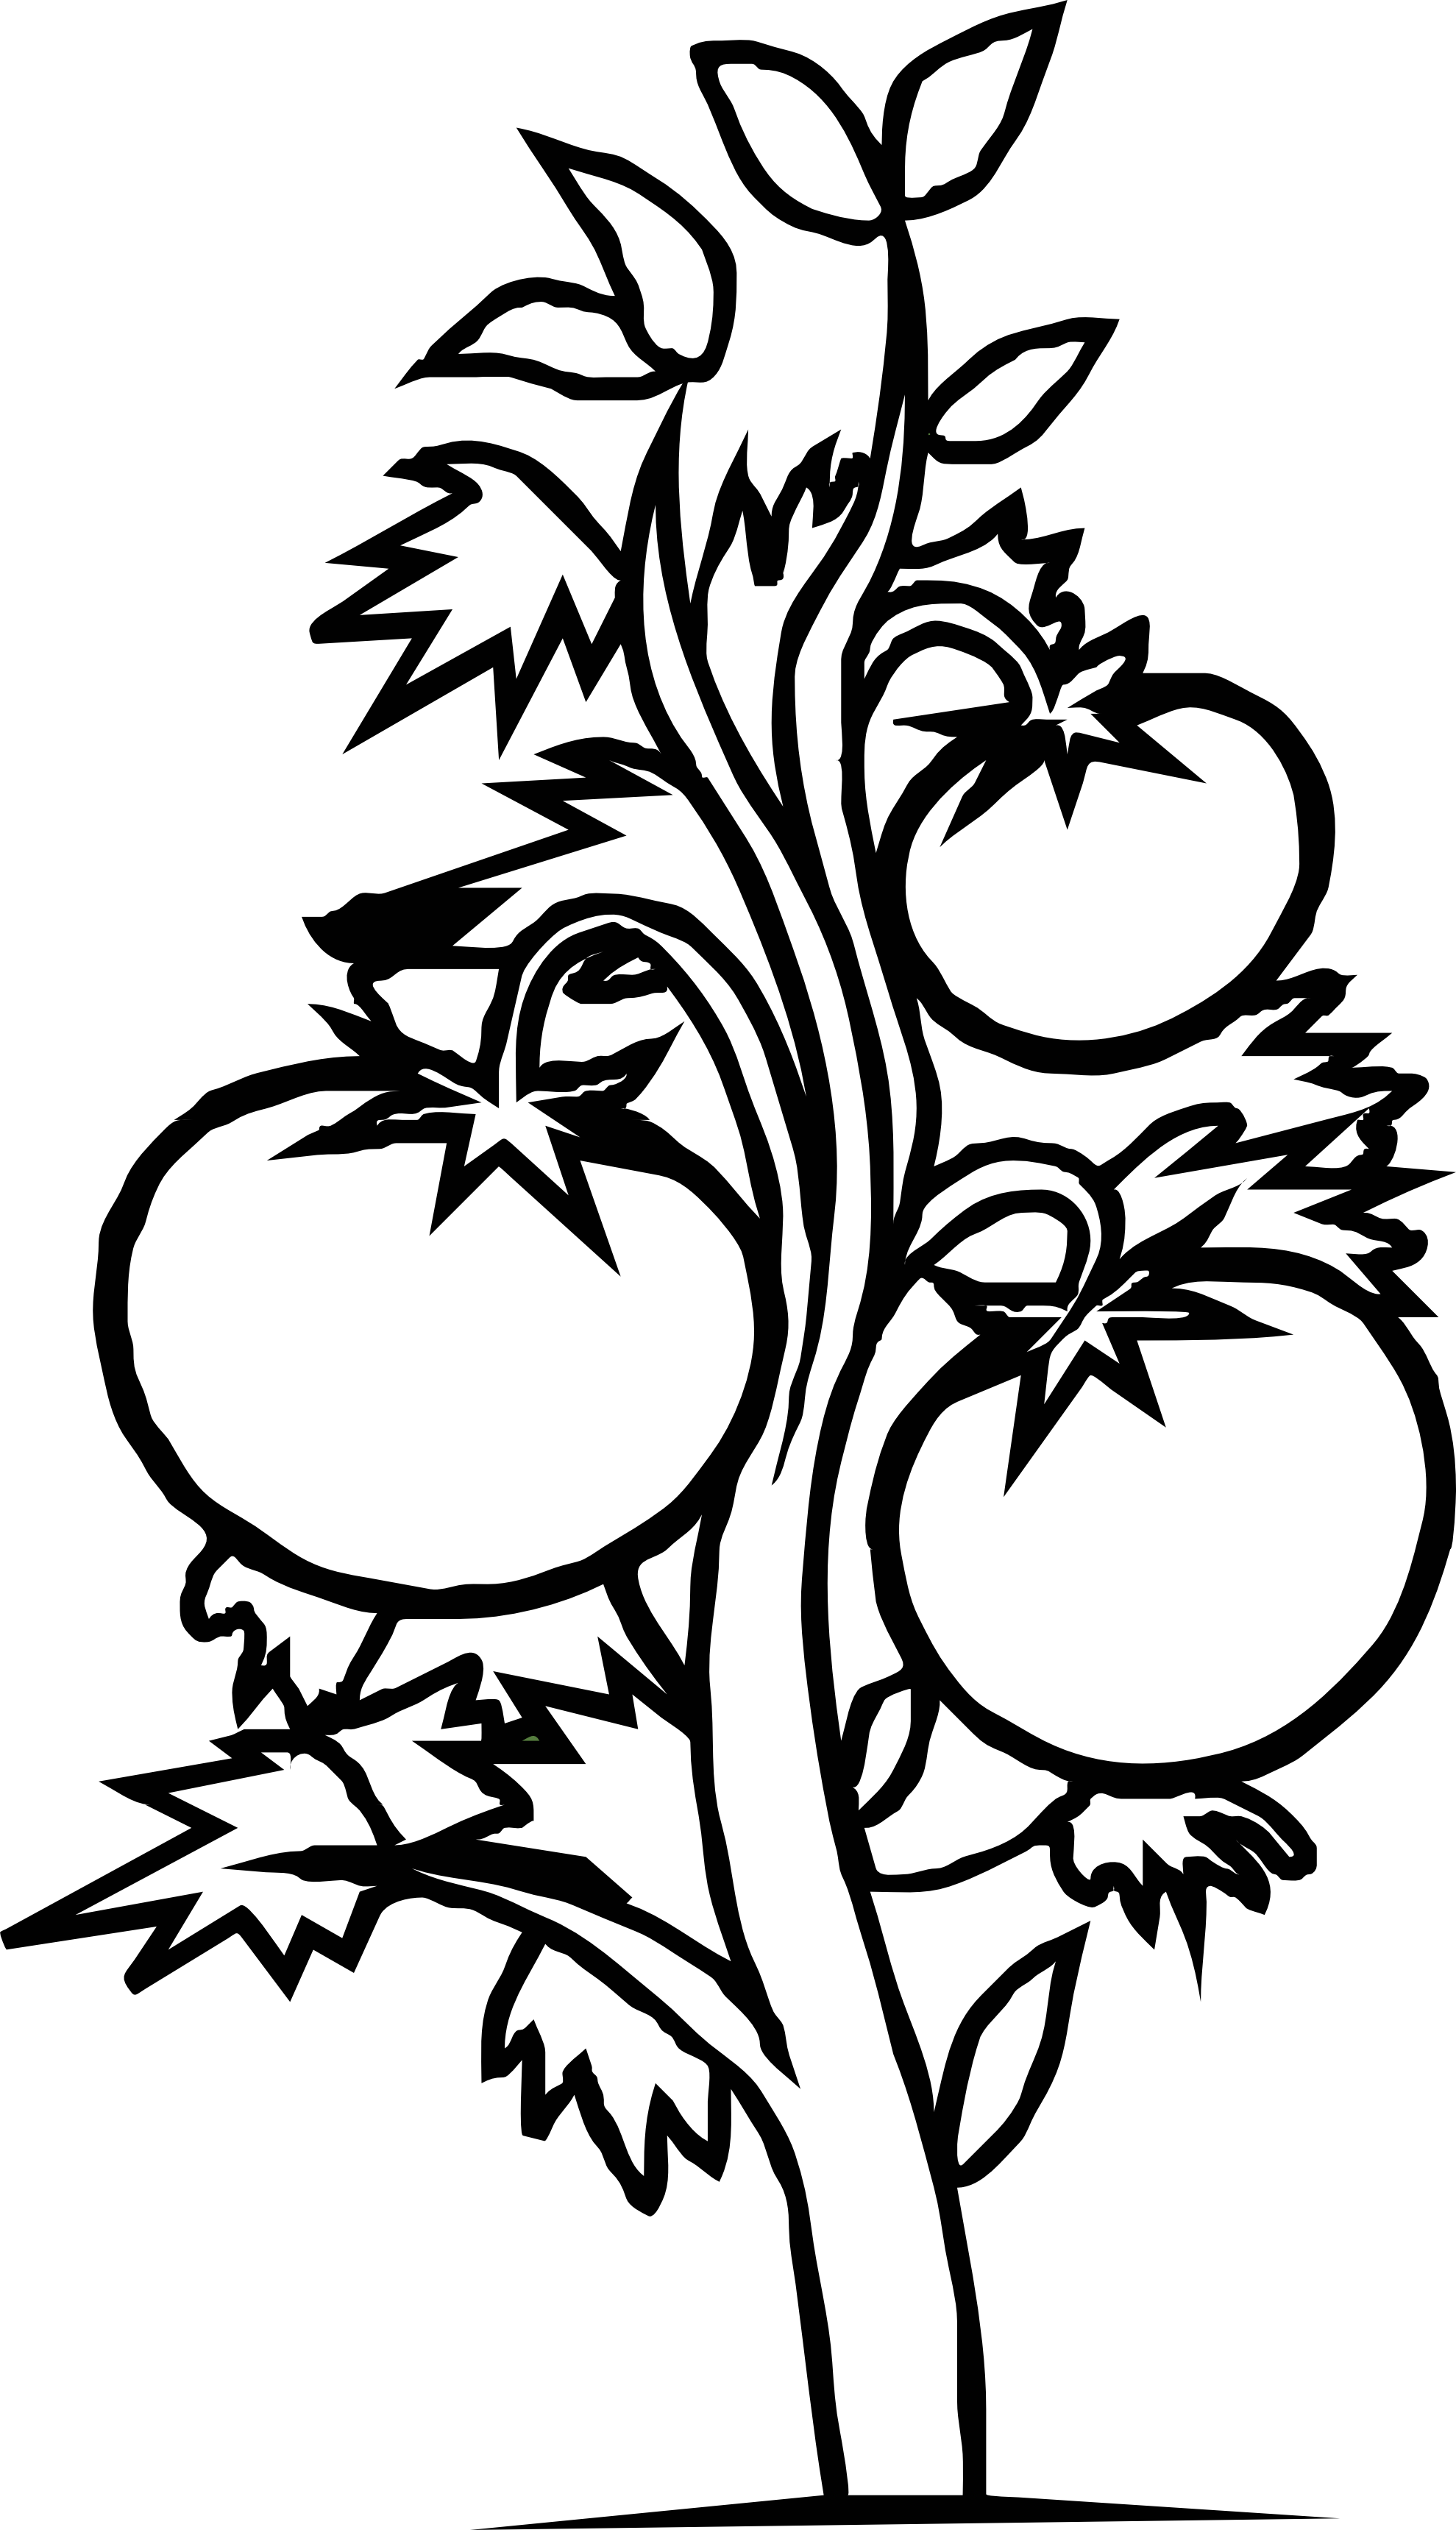 Plants decoration acents clipart black and white svg black and white library Plant Clipart Black And White | Clipart Panda - Free Clipart ... svg black and white library